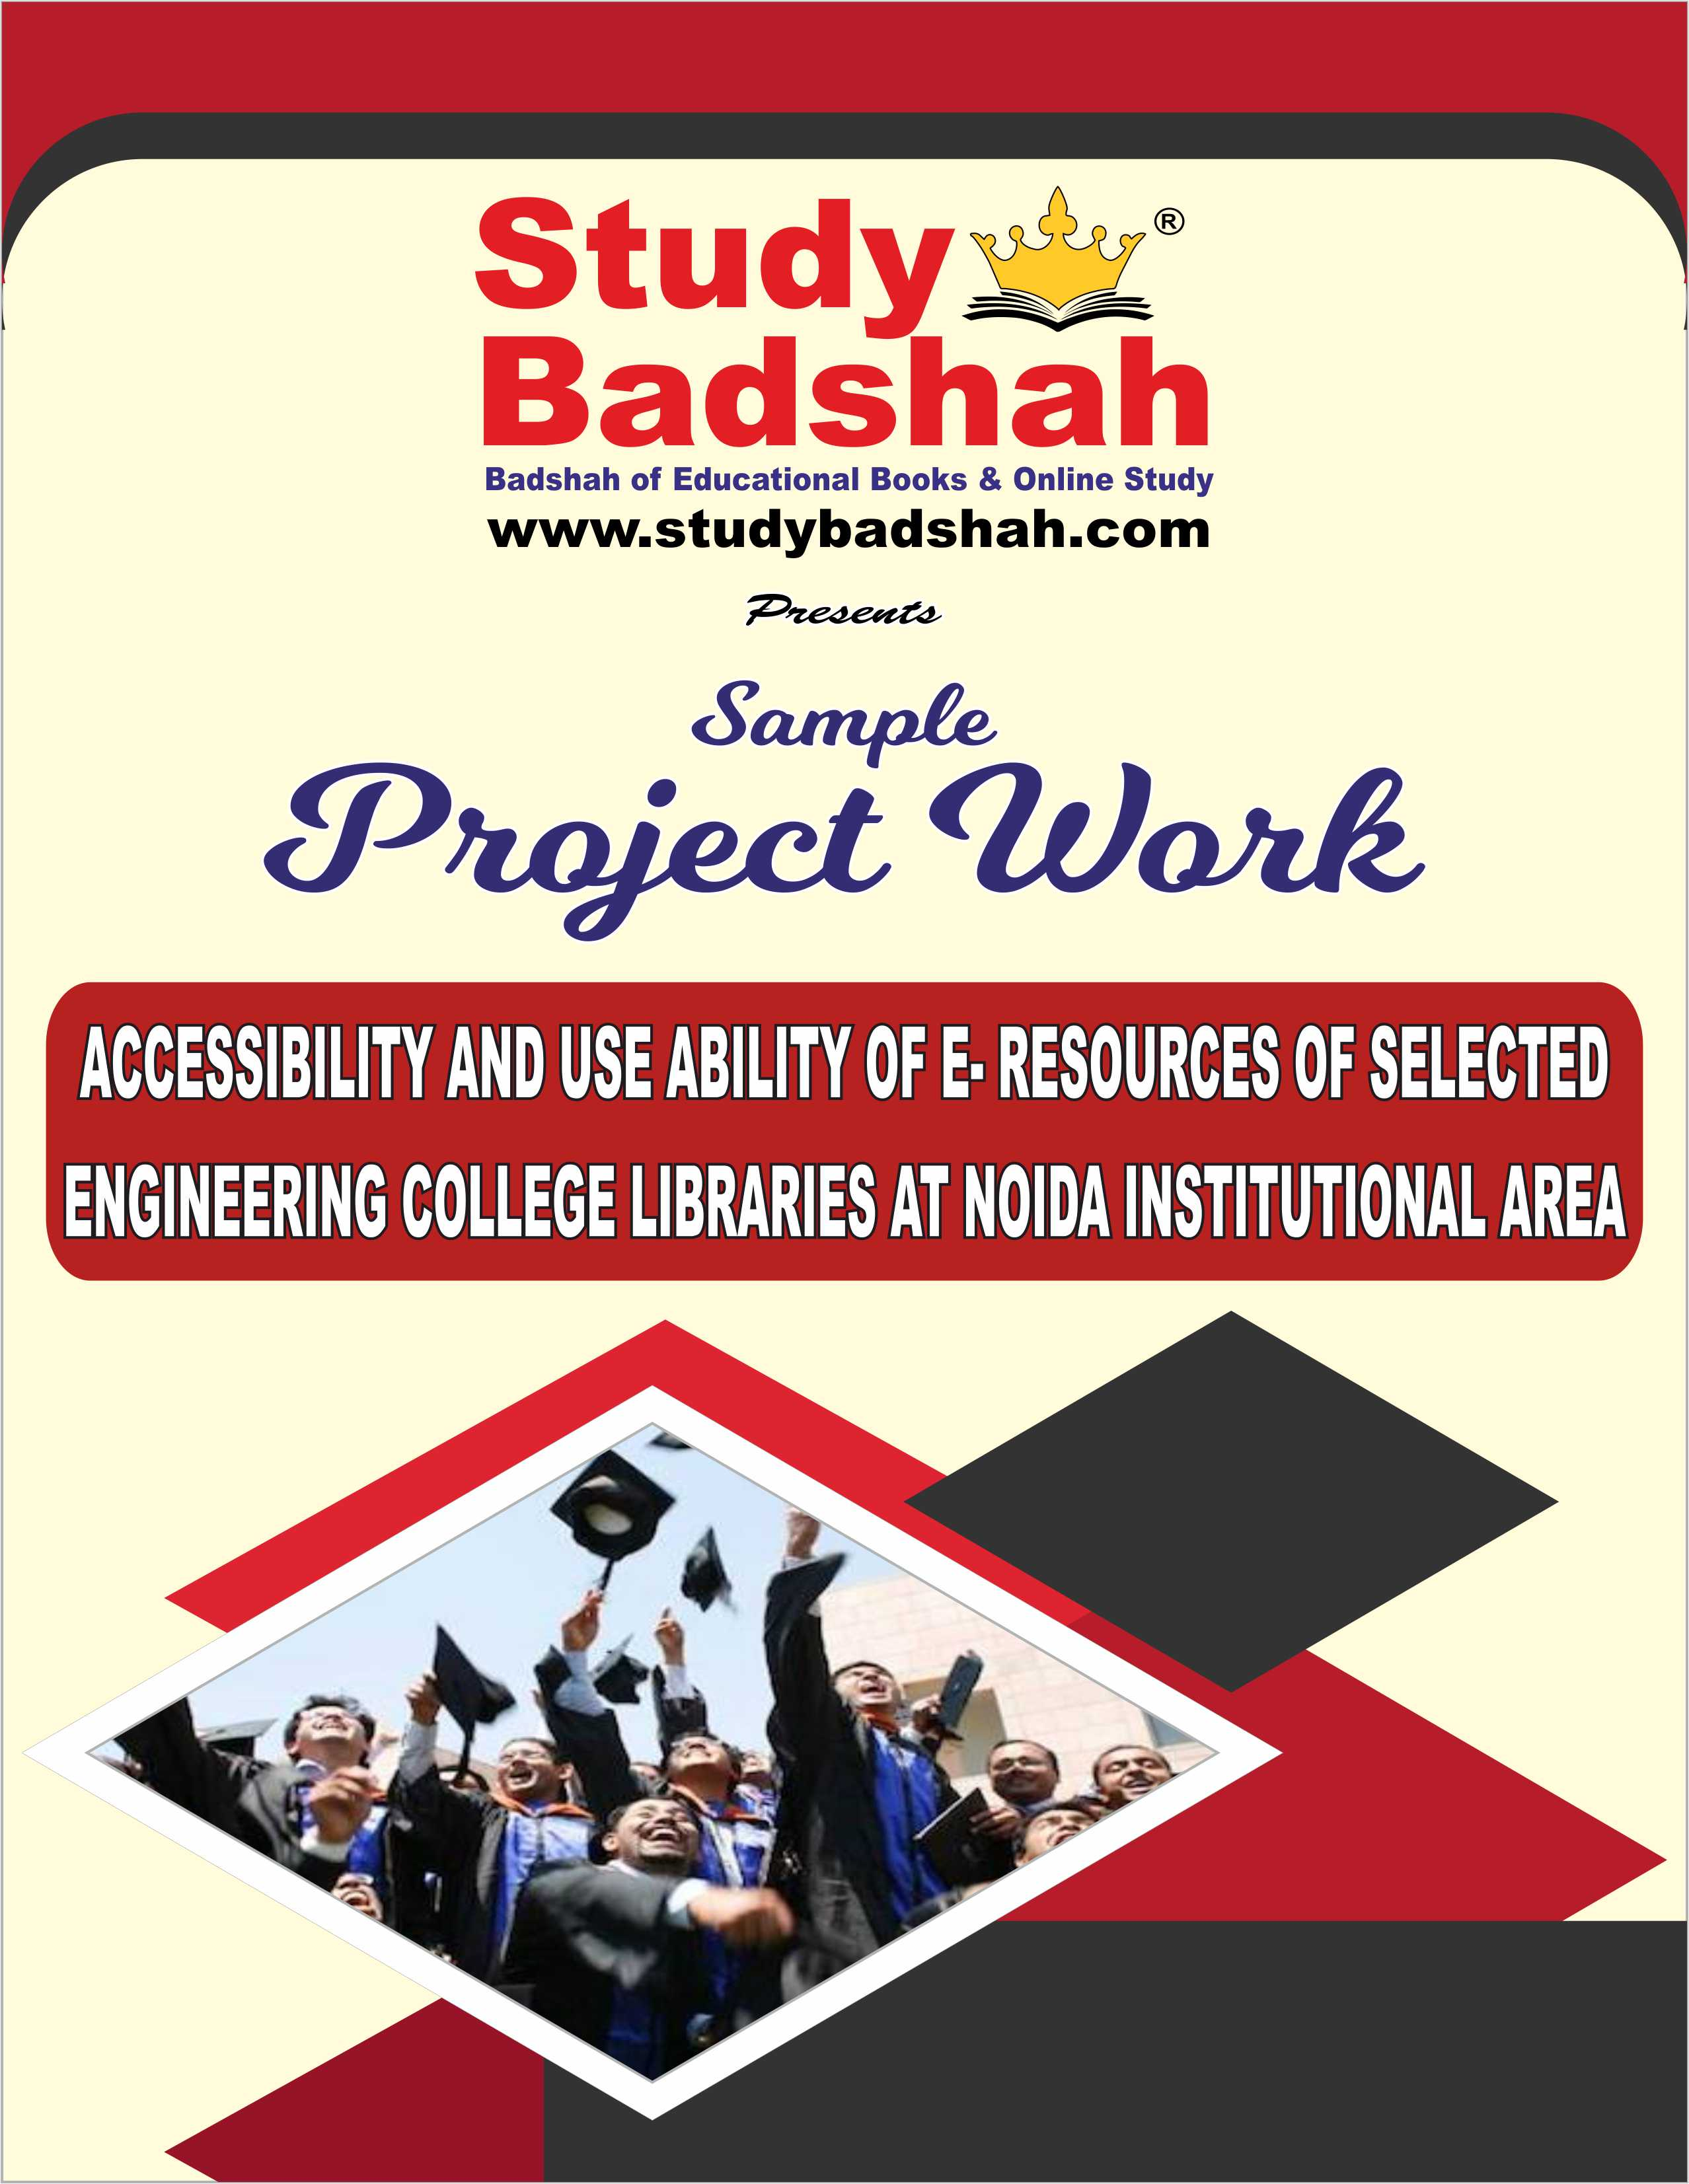 ACCESSIBILITY AND USE ABILITY OF E- RESOURCES OF SELECTED ENGINEERING COLLEGE LIBRARIES AT NOIDA INSTITUTIONAL AREA